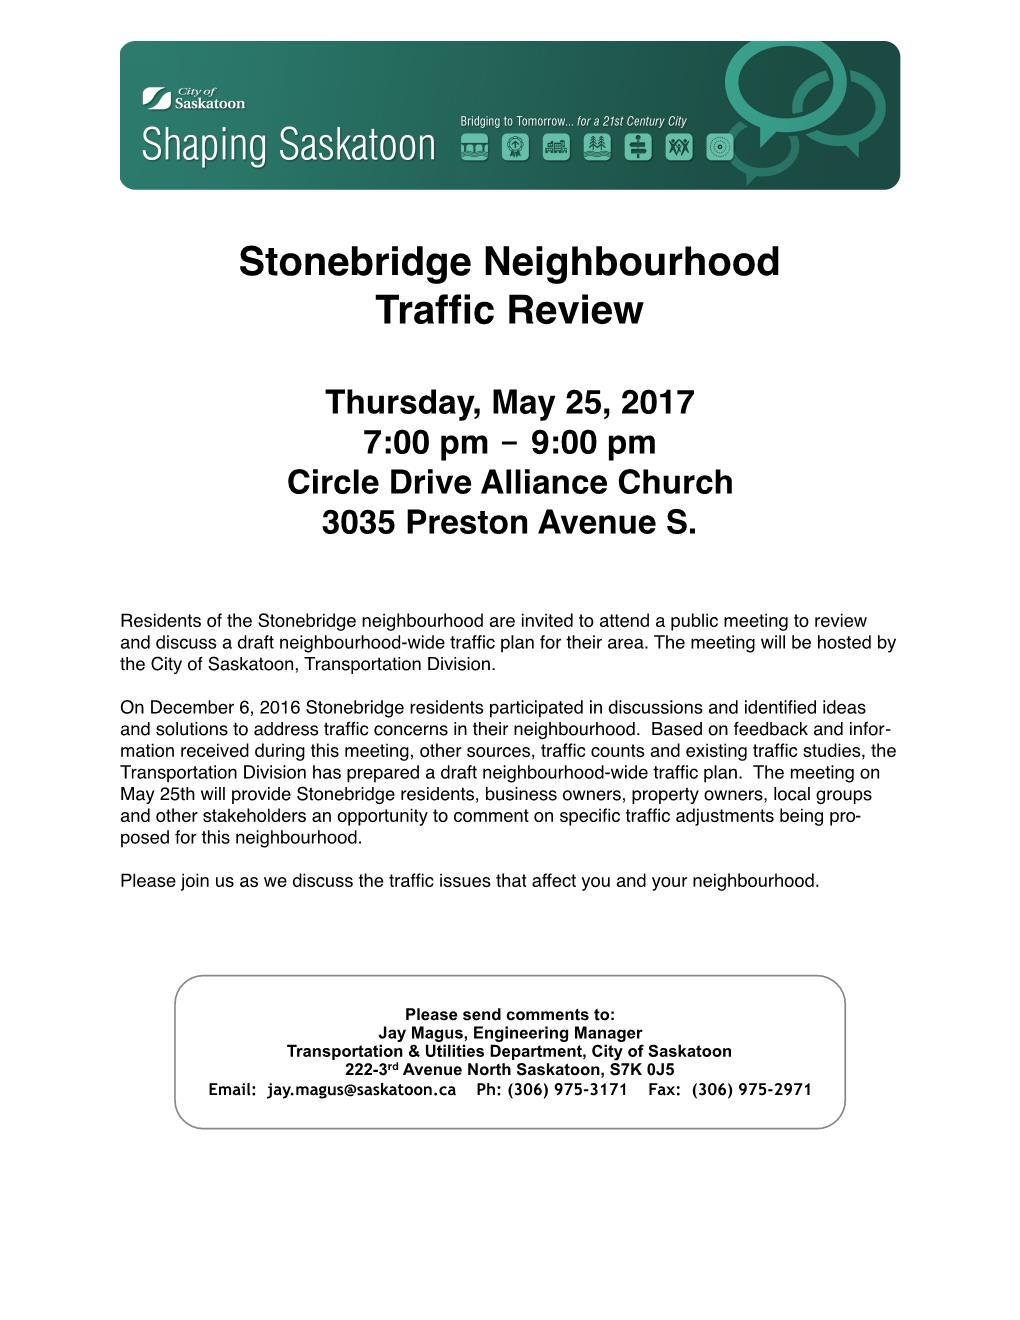 Shaping Saskatoon Stonebridge Traffic Review Flyer Follow Up Meeting May 25 2017